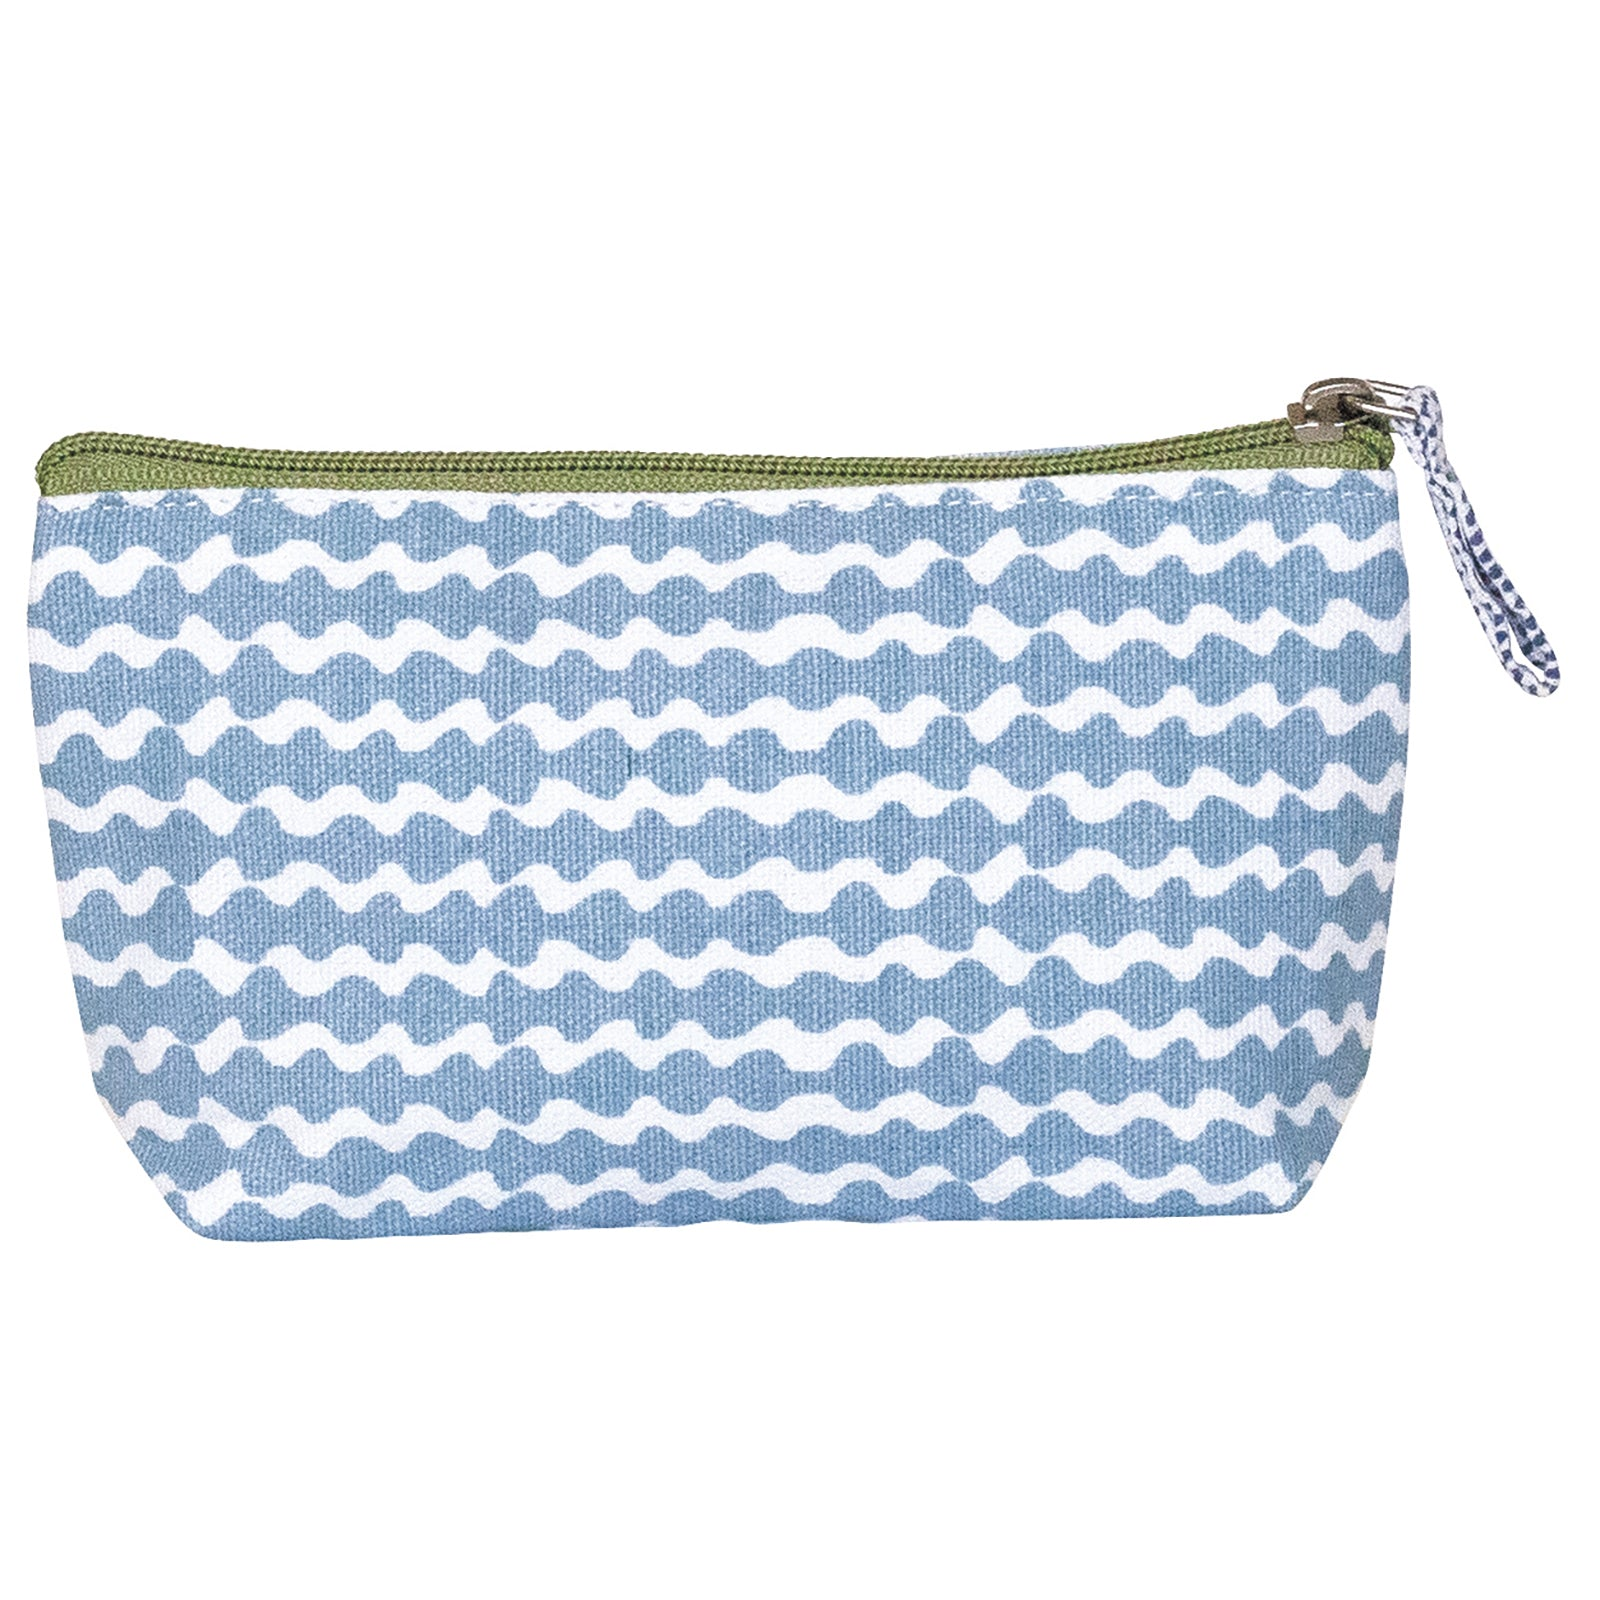 Cheyenne Blue Pouch Small